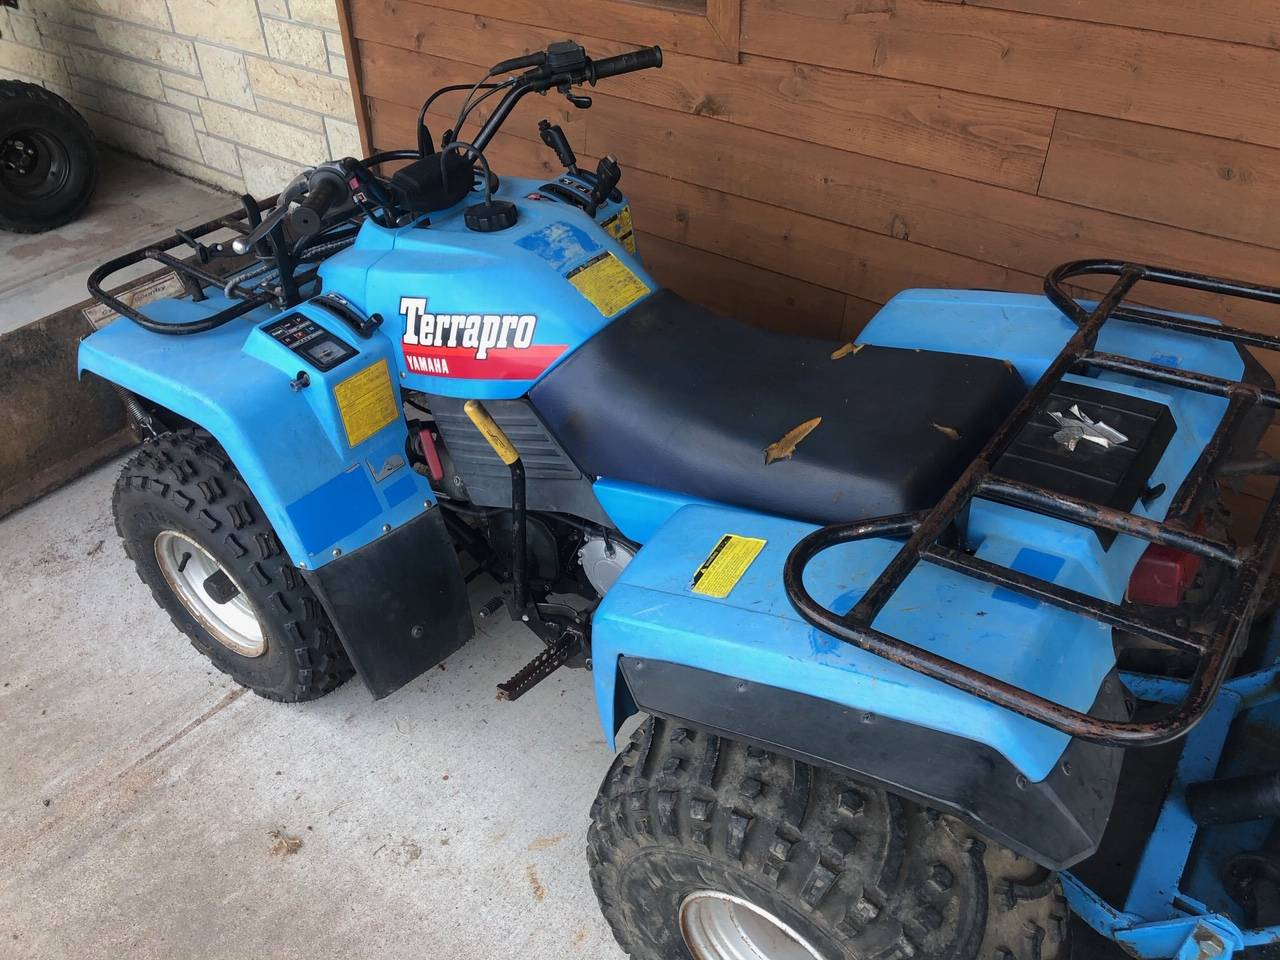 1988 Yamaha TERRA PRO in Trego, Wisconsin - Photo 2